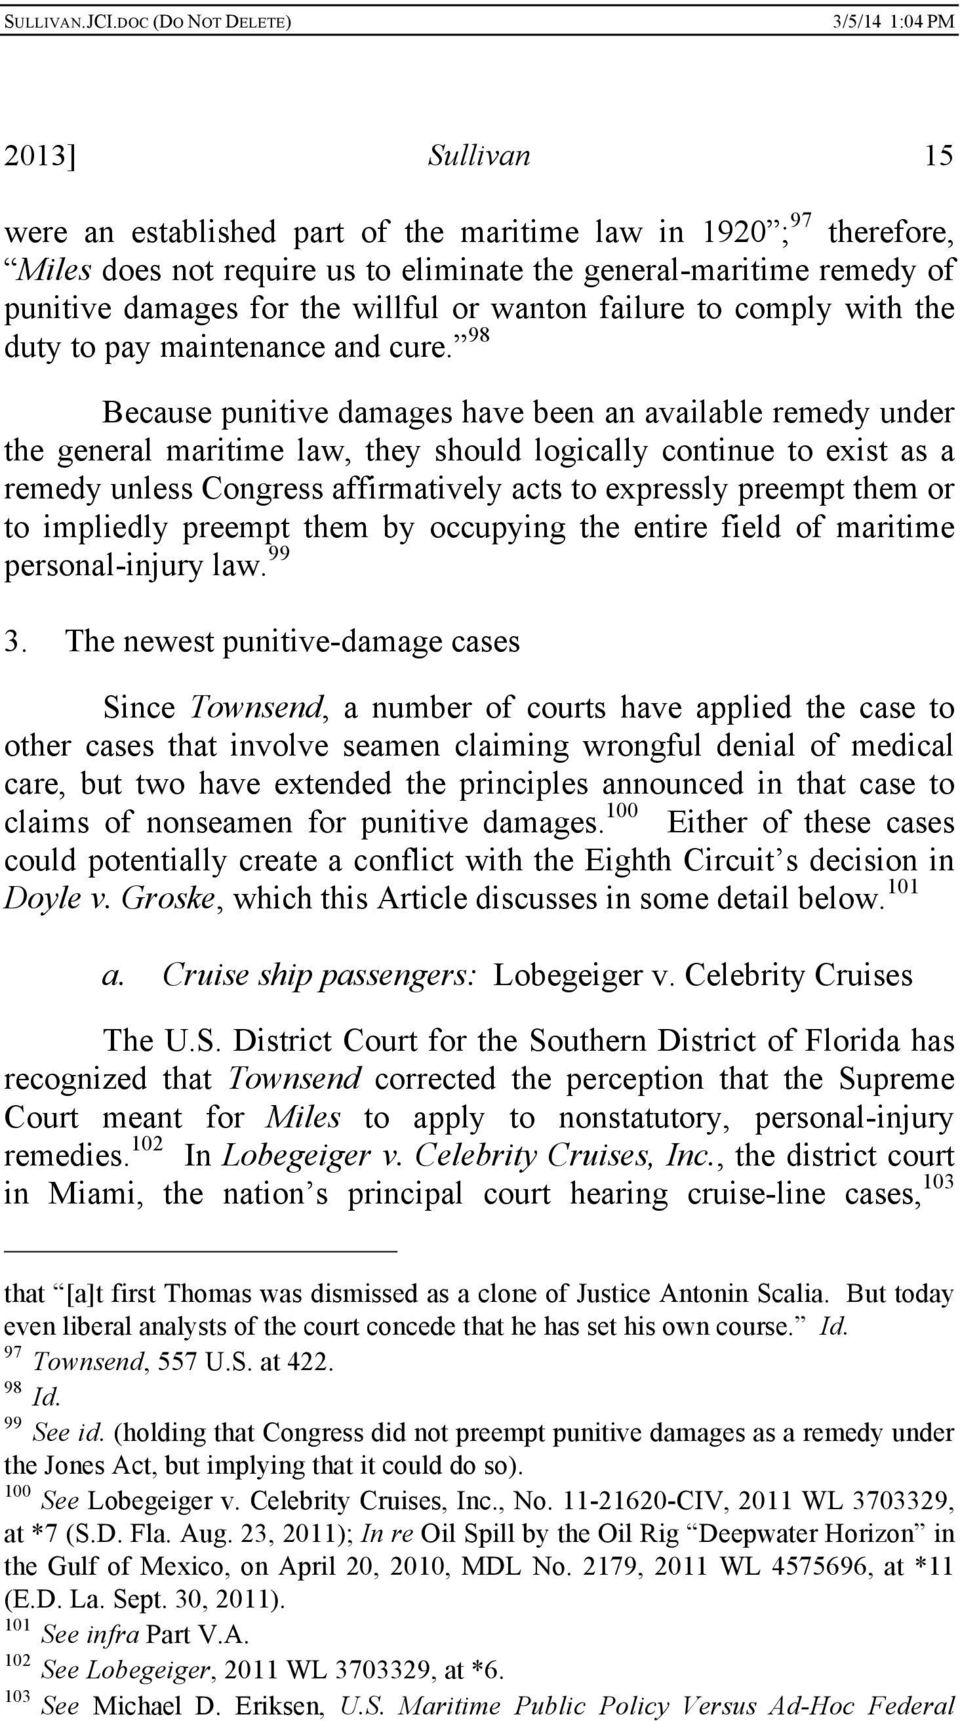 98 Because punitive damages have been an available remedy under the general maritime law, they should logically continue to exist as a remedy unless Congress affirmatively acts to expressly preempt